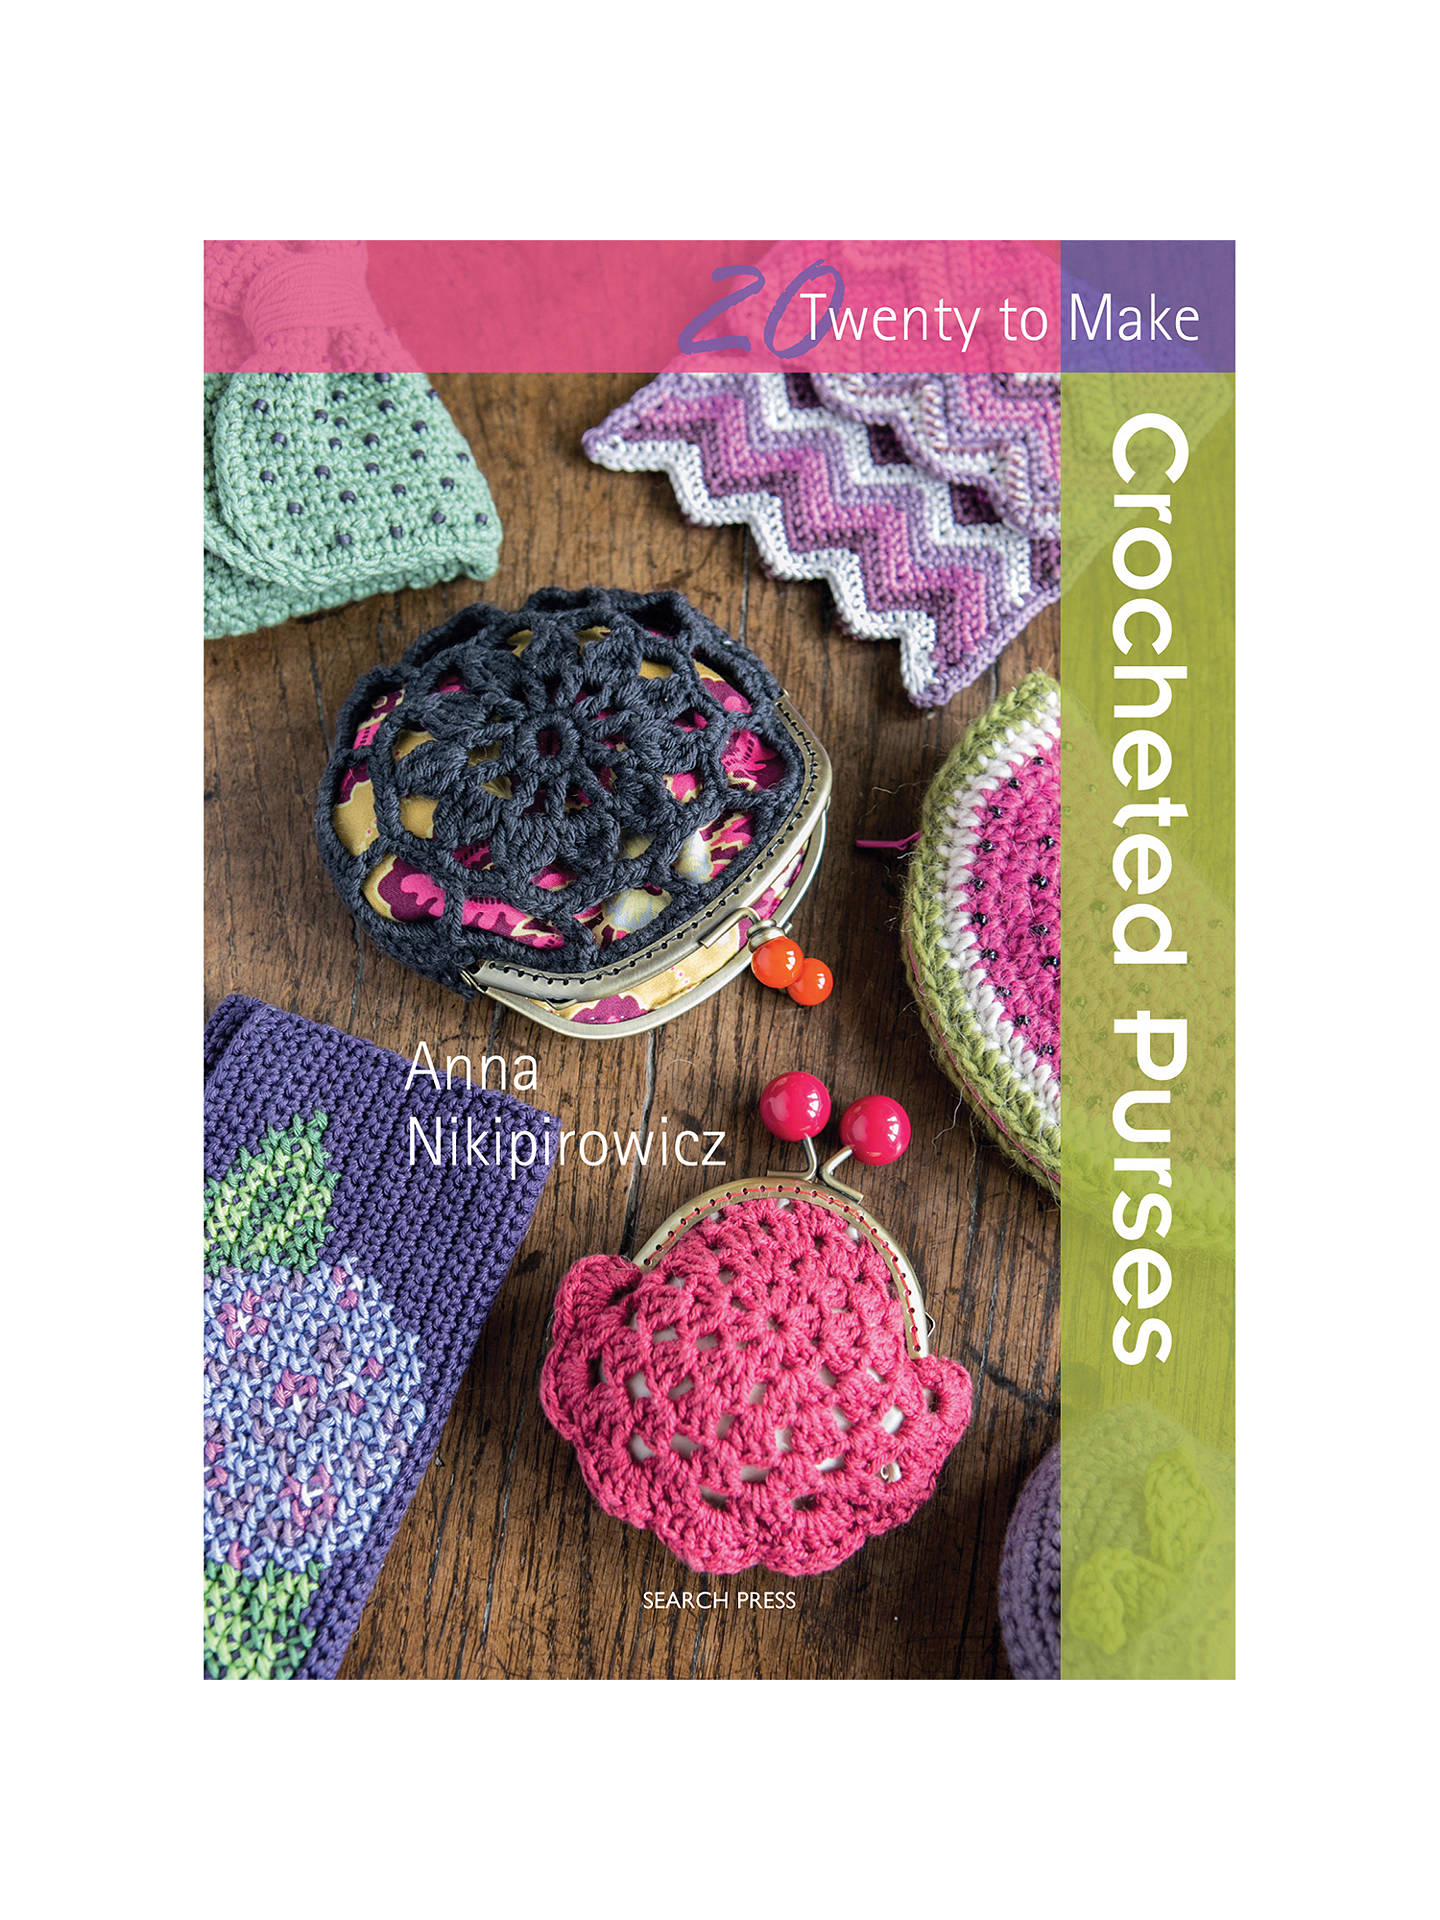 20 To Make Crocheted Purses By Anna Nikipirowicz Book At John Lewis